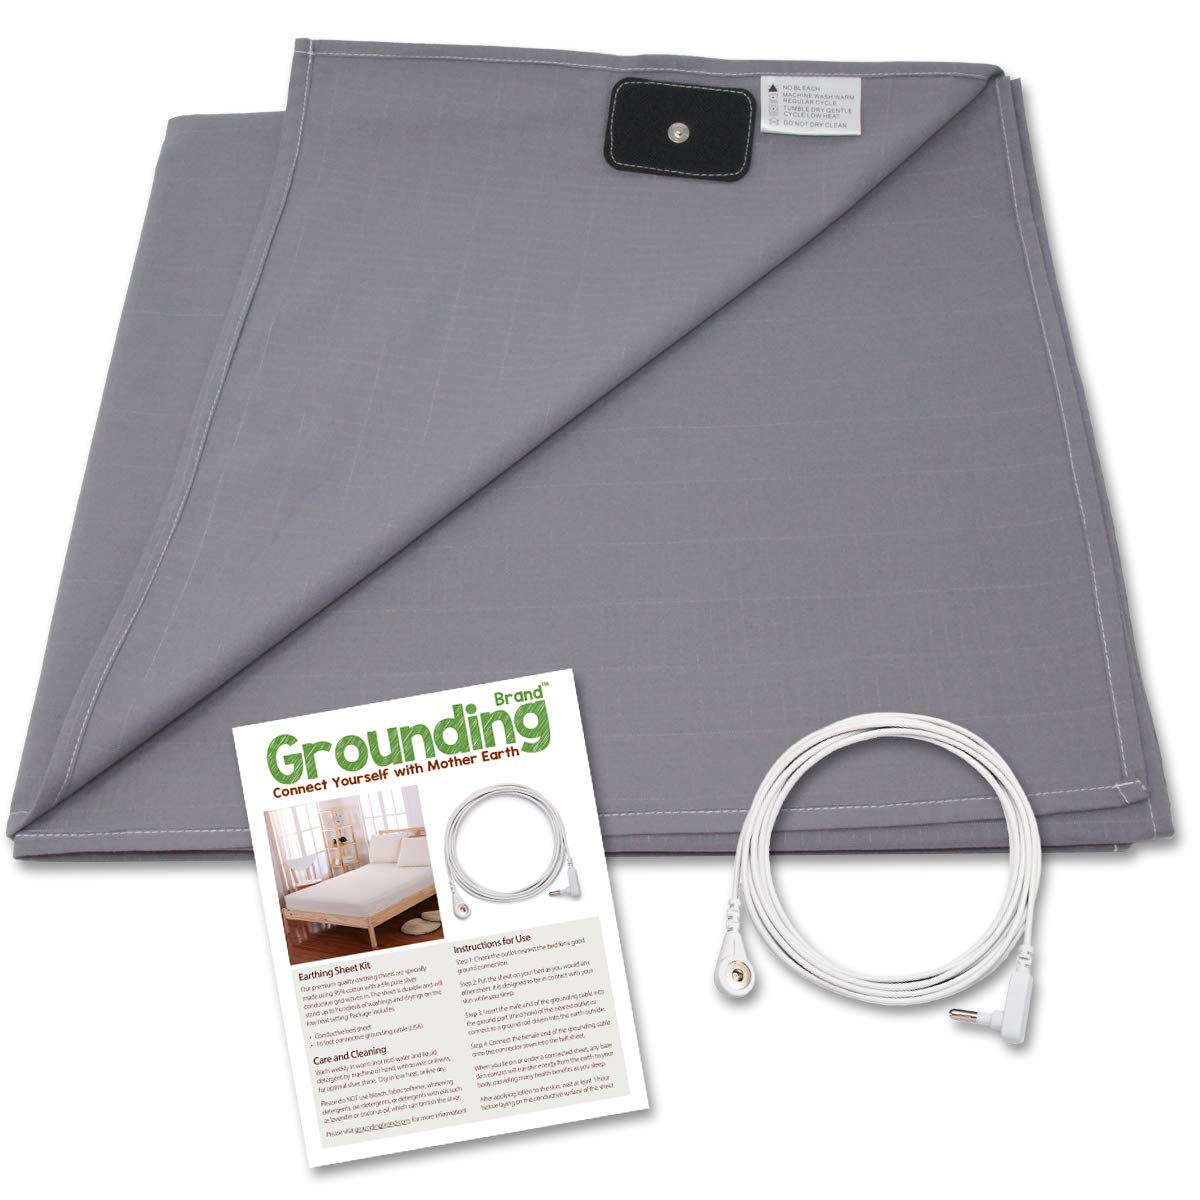 Grounding Brand Half Sheet with Earth Connection Cord - Silver Antimicrobial Conductive Mat for Better Sleep, EMF Protection and Healthy Energy, Large 98x35.5 fits Full, Queen, King, Rich Grey